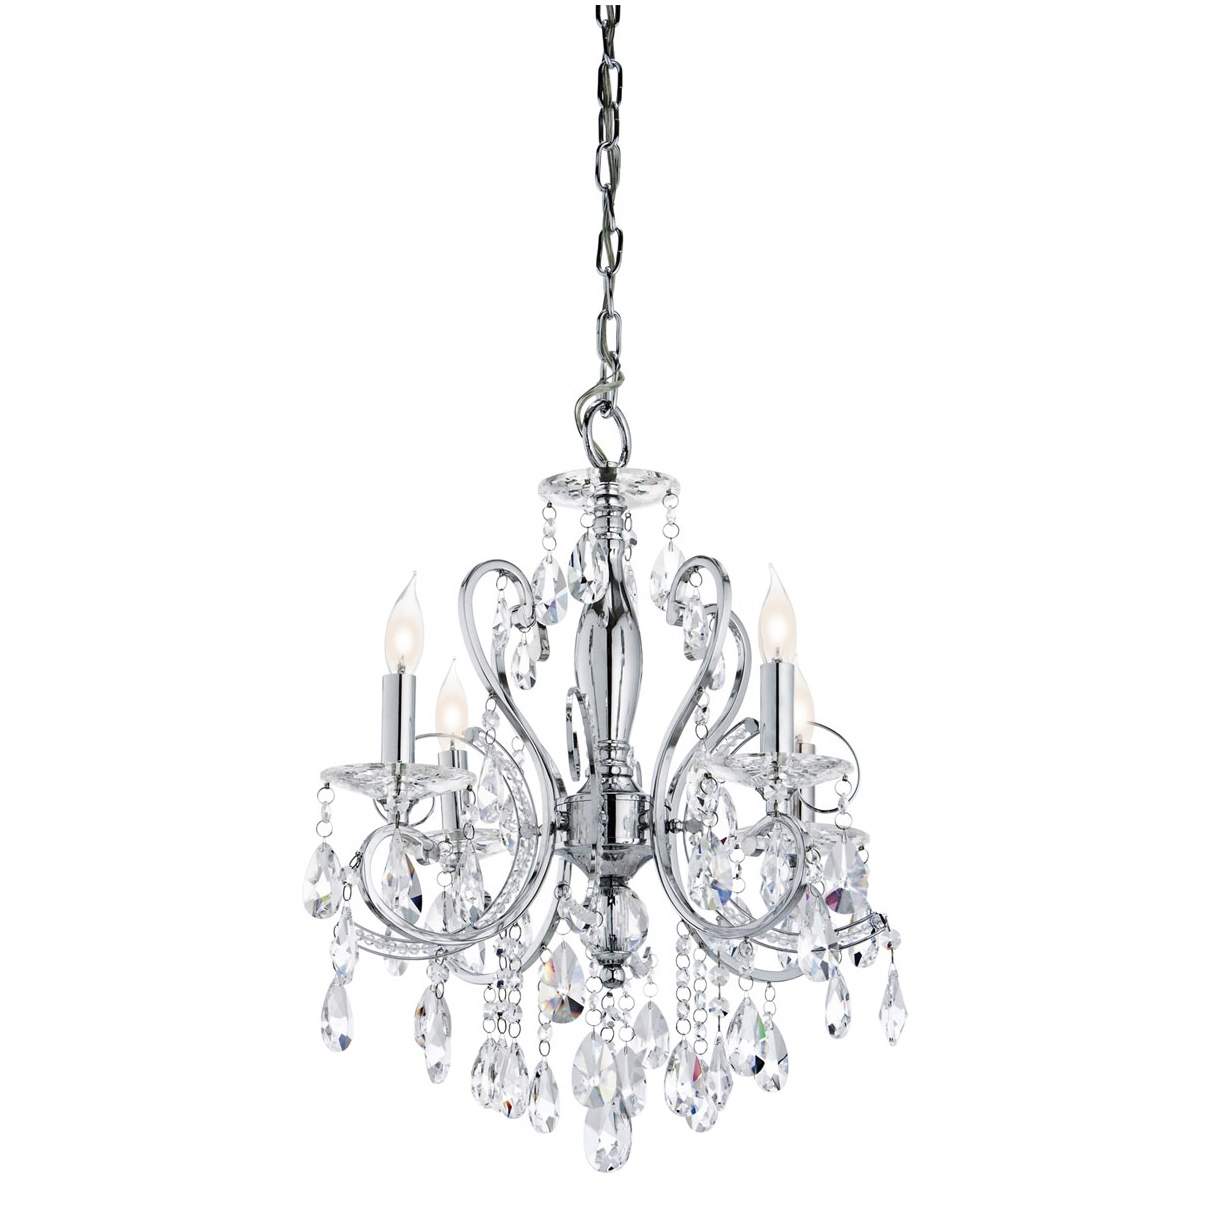 Outstanding Small Crystal Chandeliers For With Bedroom Between With Mini Crystal Chandeliers (View 10 of 25)